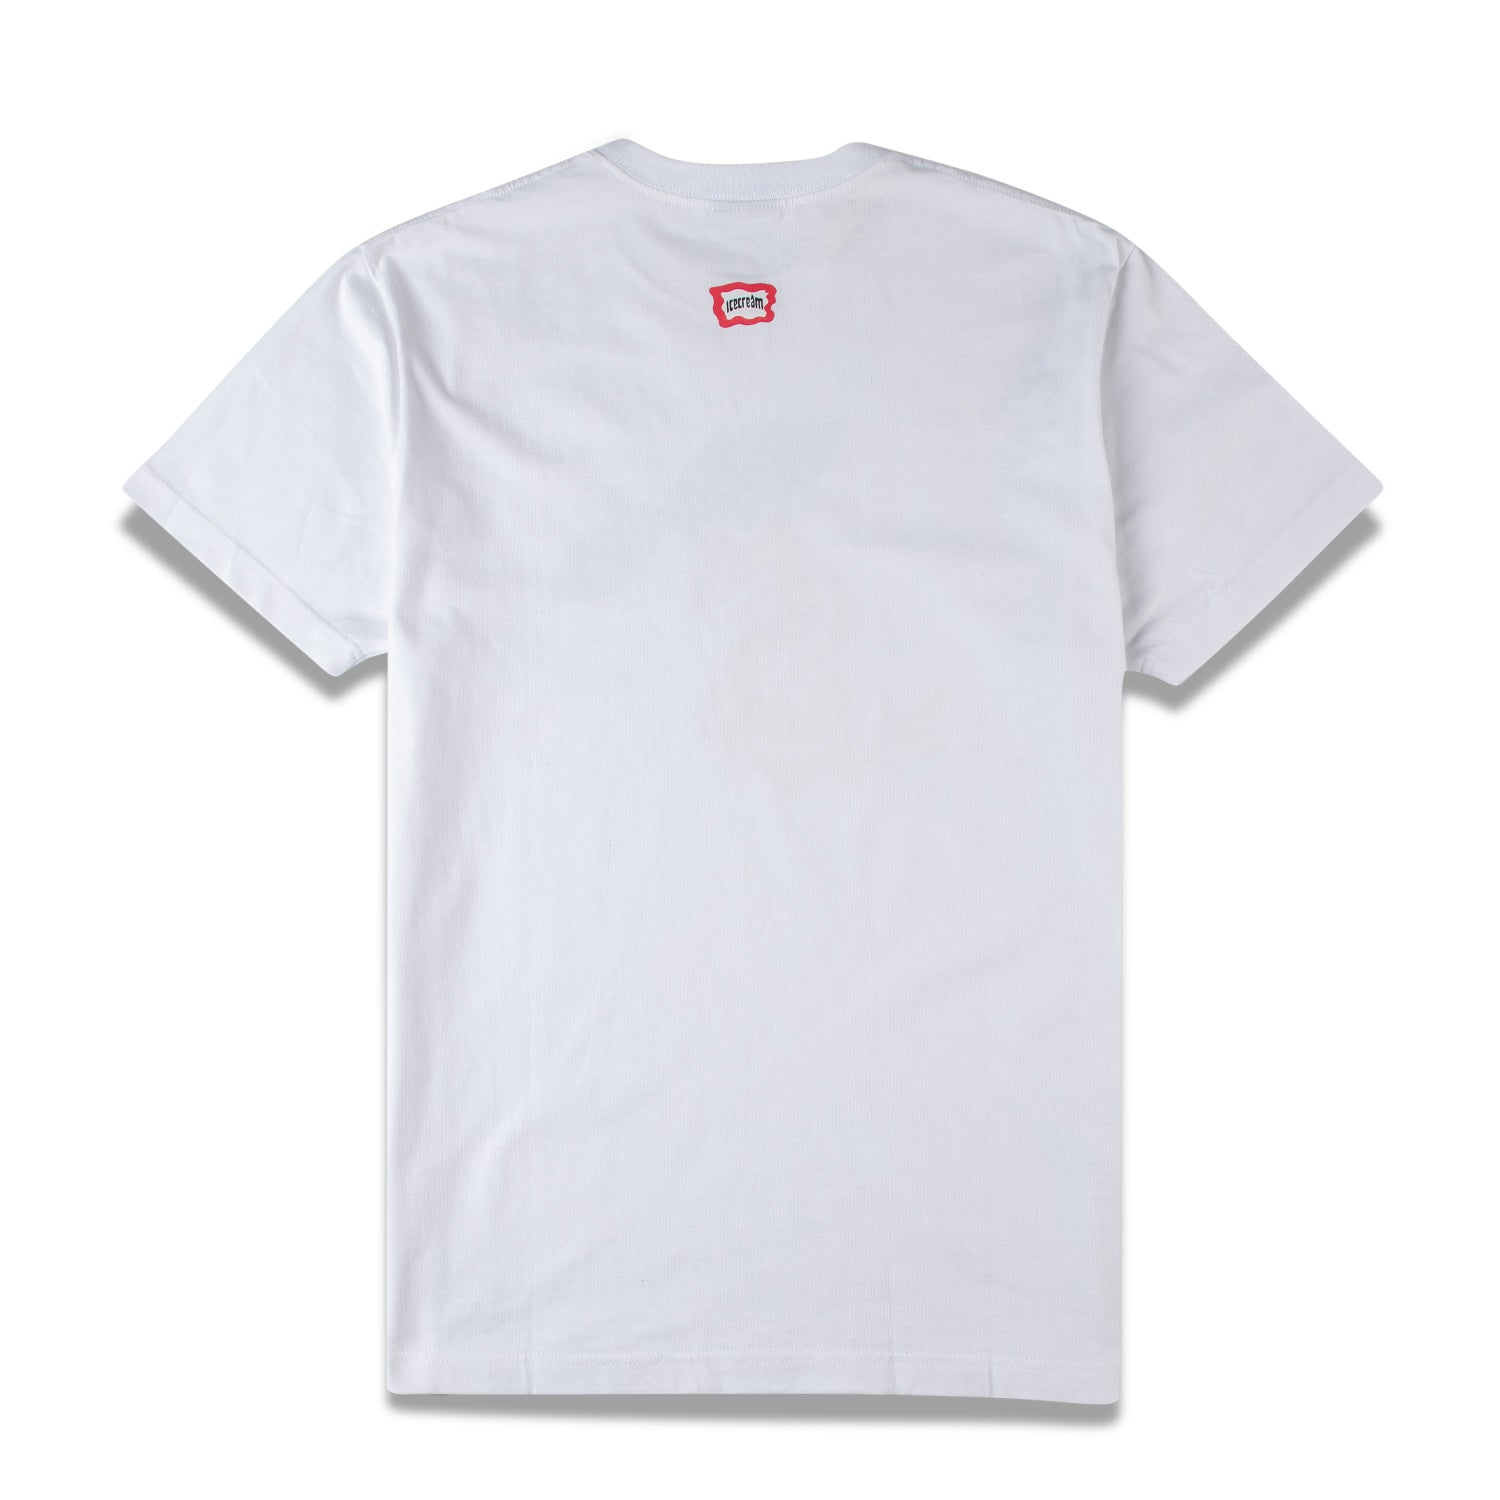 Details about  /Billionaire Boys Club ICE CREAM PERALTA SS Tee White 401-2201 NEW WITH TAGS